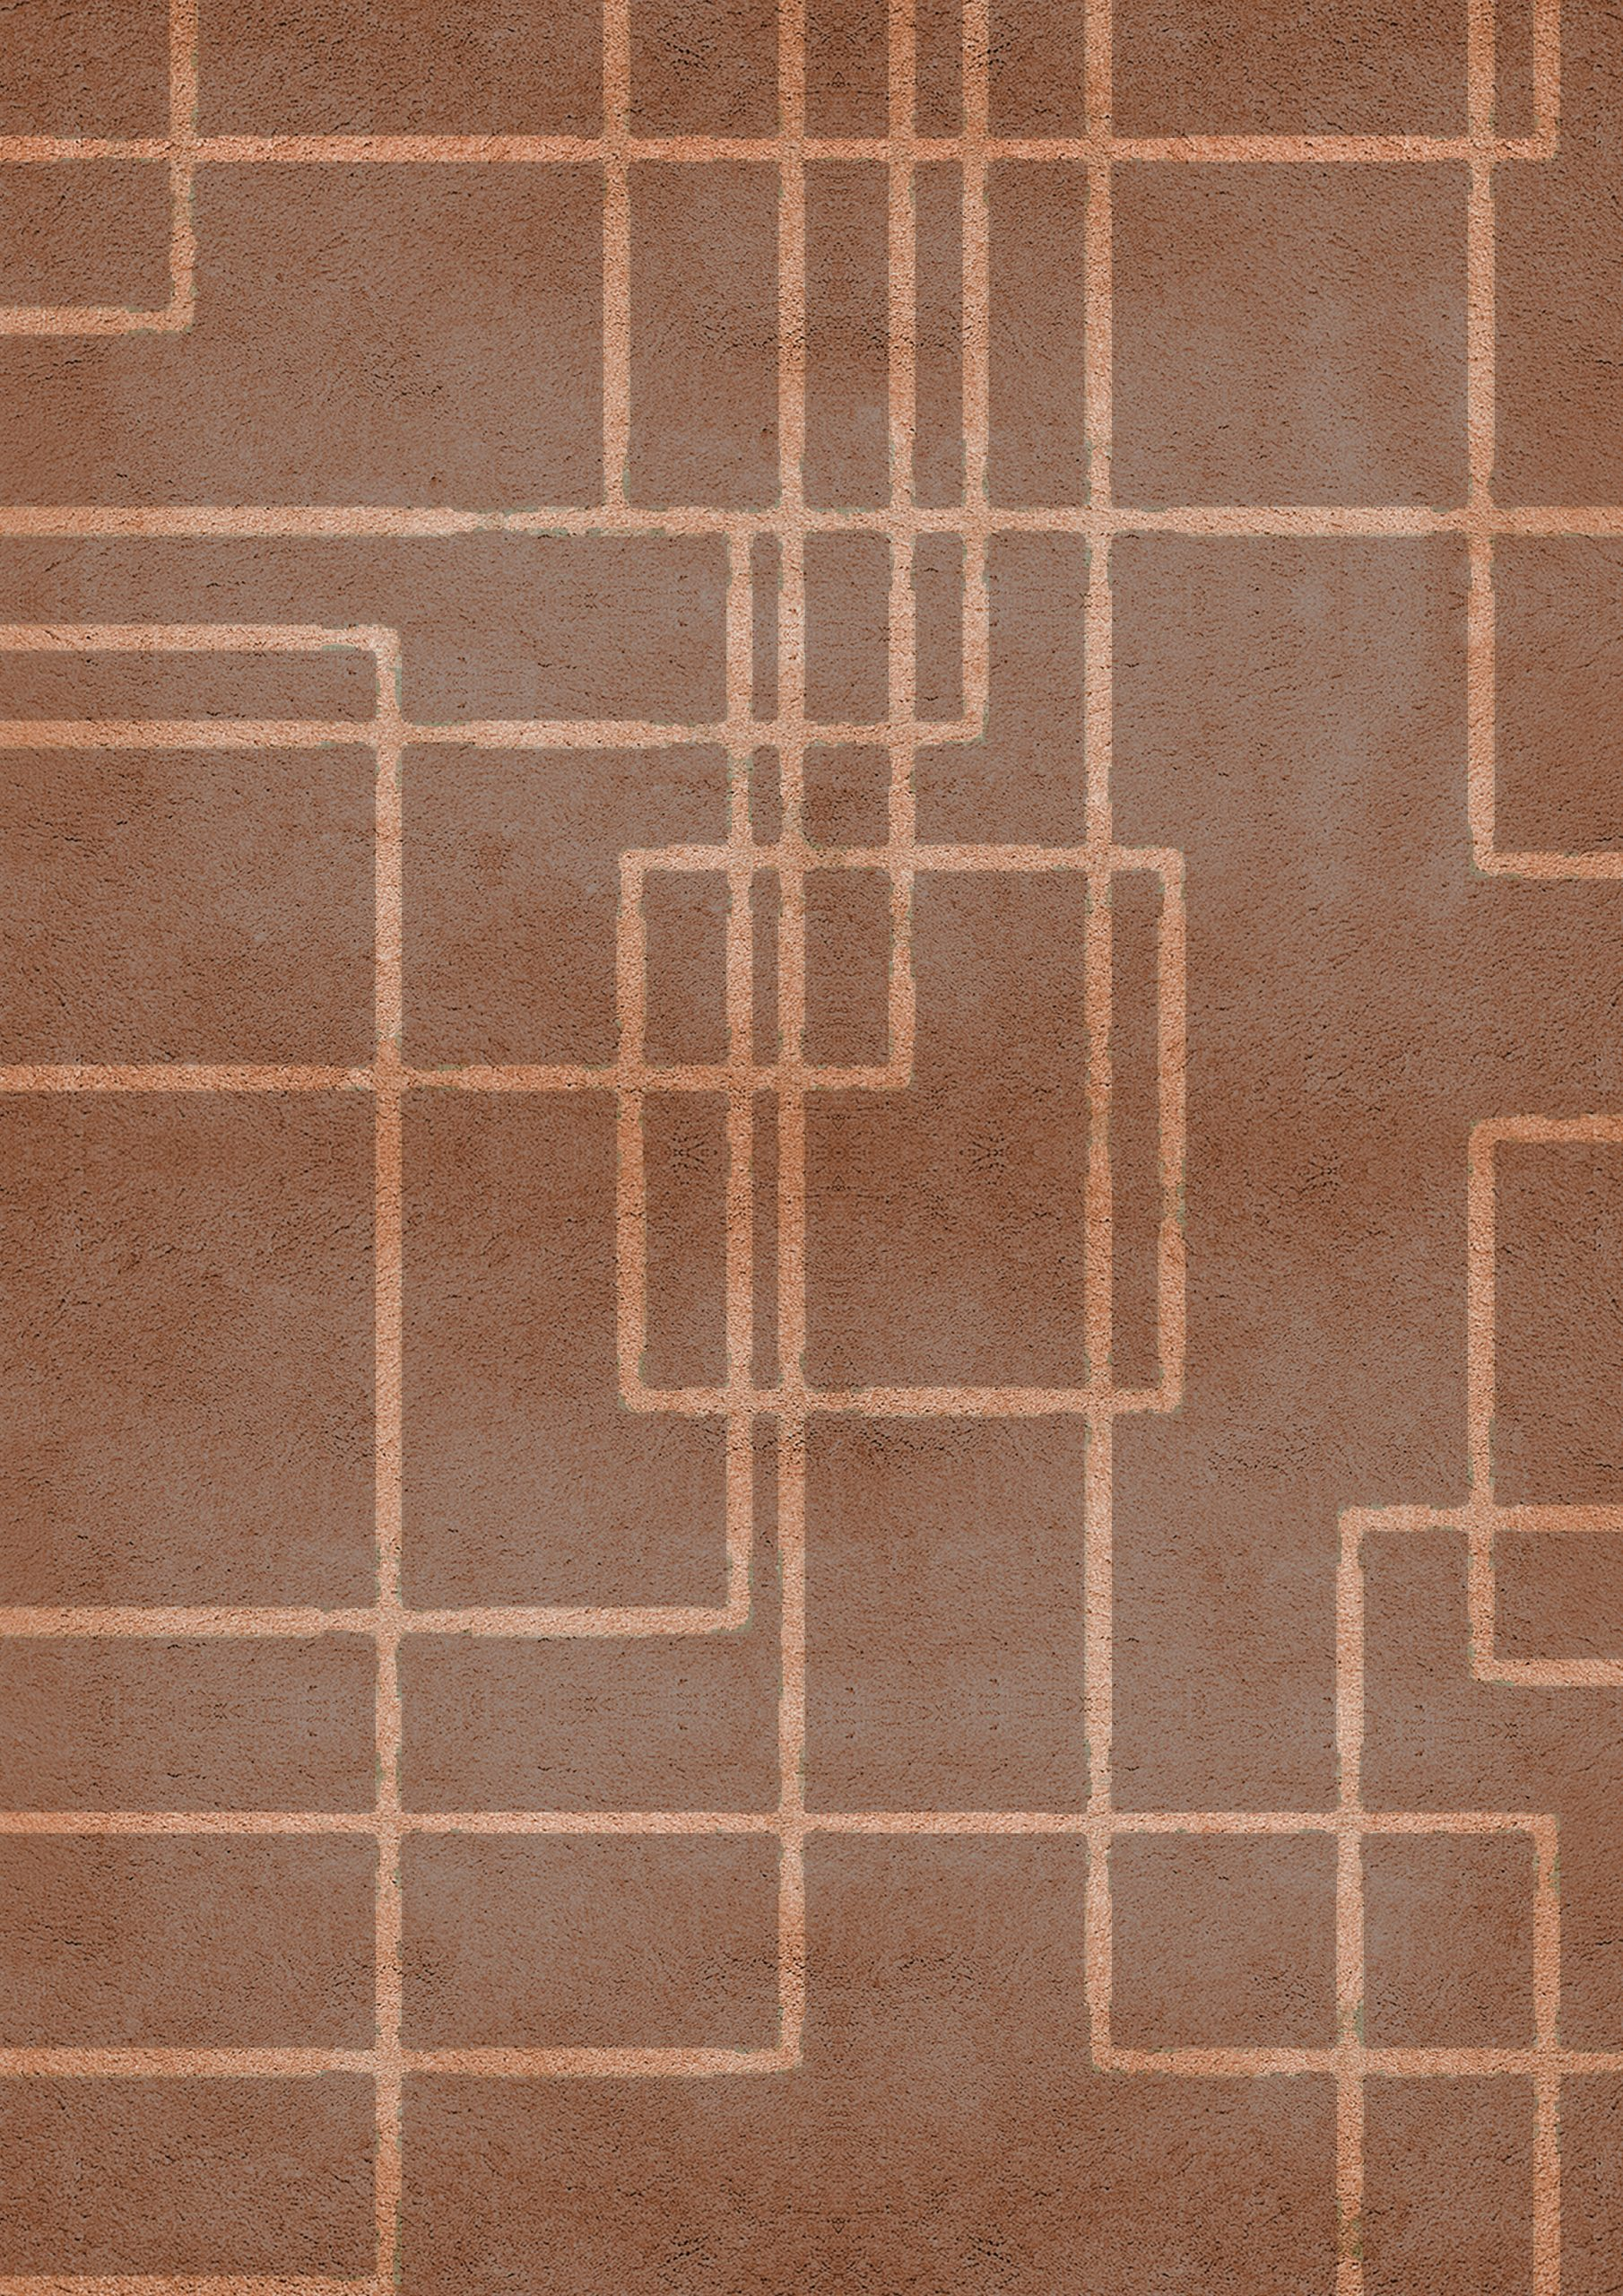 brown rugs Brown Rugs: Modern Design Inspirations To Embrace Earthier Shades terracotta HR scaled